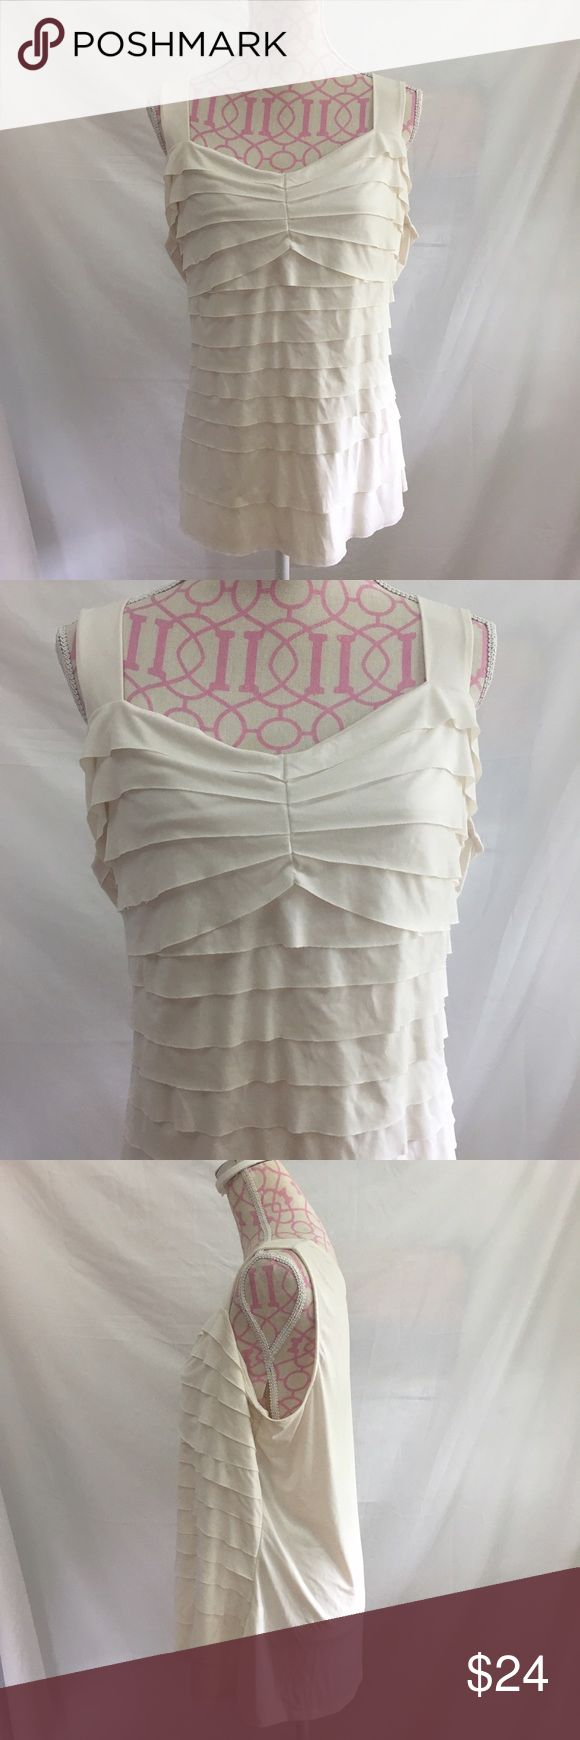 Lane Bryant Tiered Top Size 18/20 Lane Bryant white tiered top. Sleeveless. Excellent condition  Size 18/20 Bust approximately 44 inches  Length approximately 25 inches 95% polyester/ 5% spandex Lane Bryant Tops Blouses